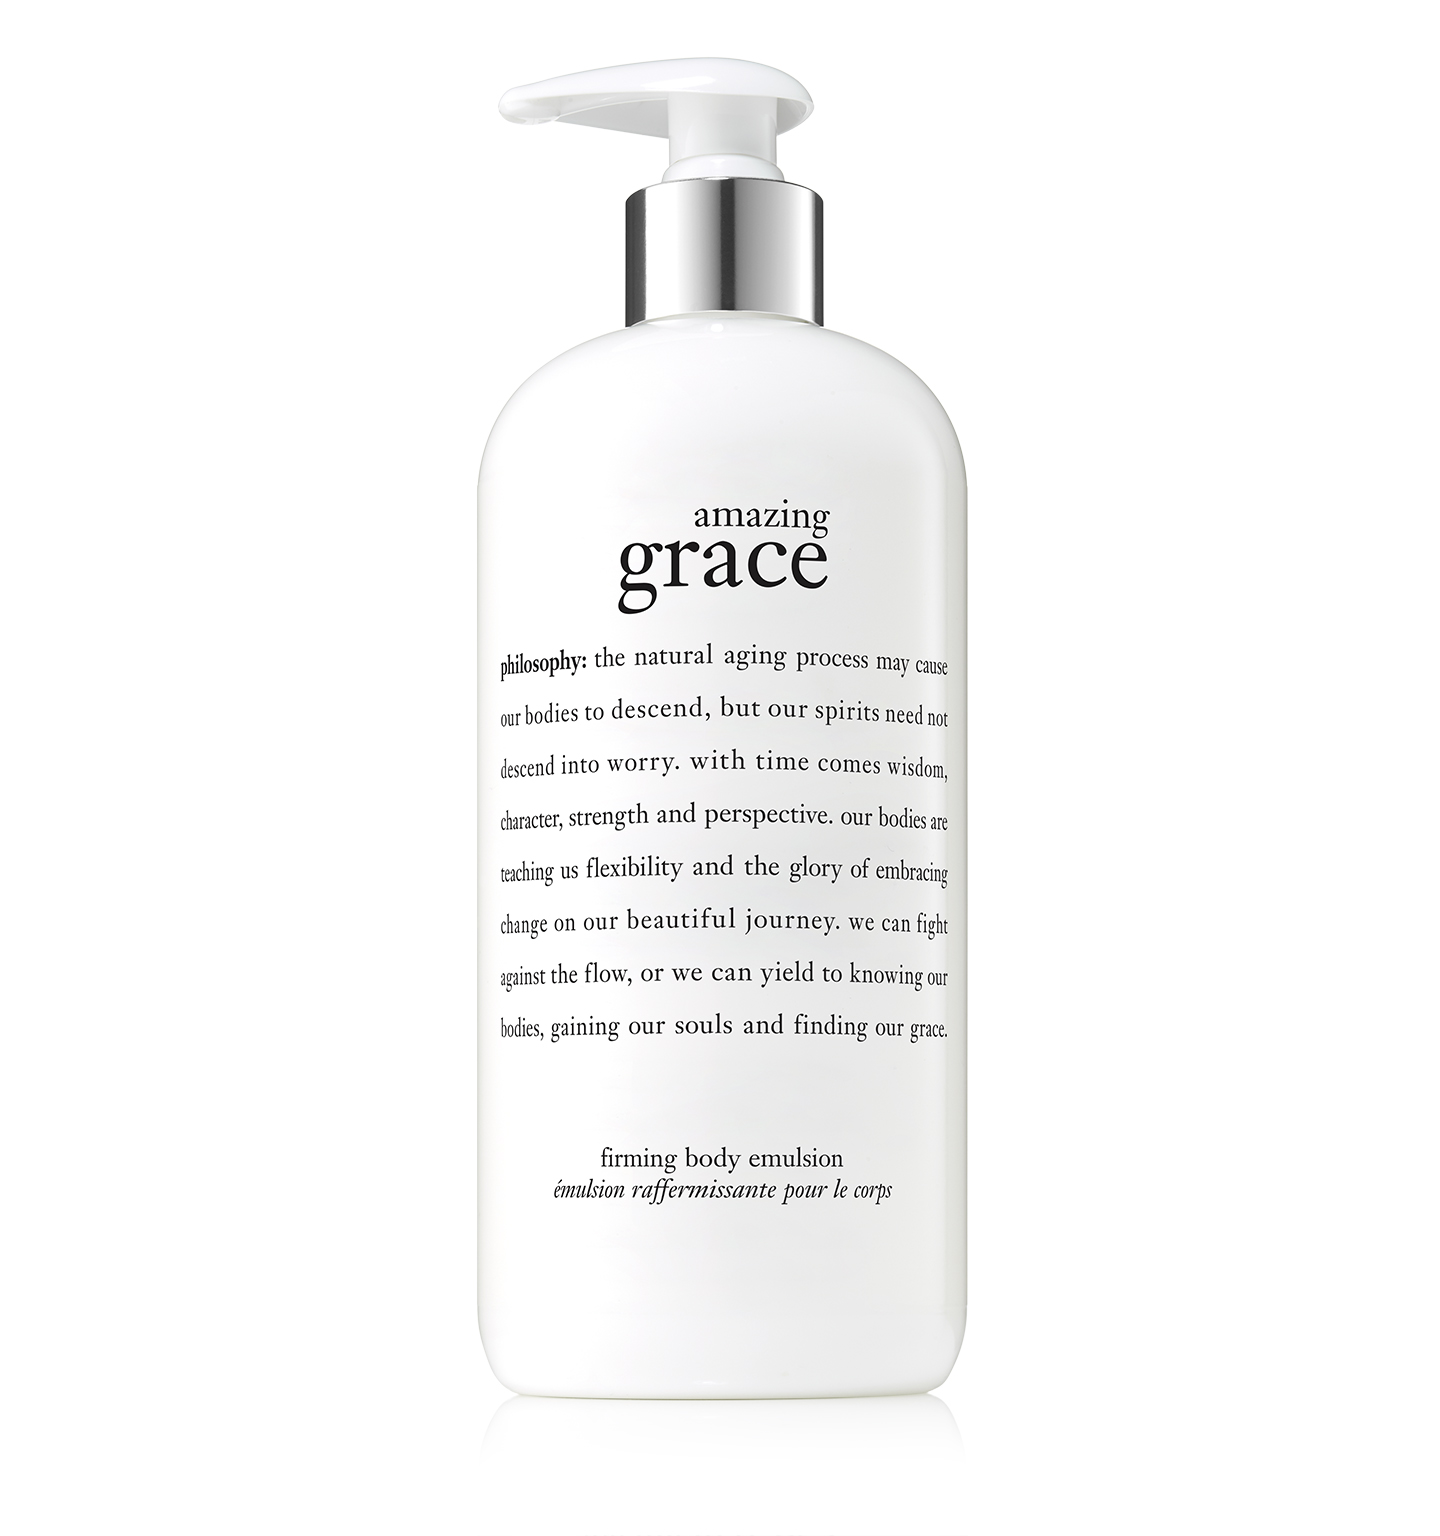 philosophy, amazing grace 16 oz body emulsion